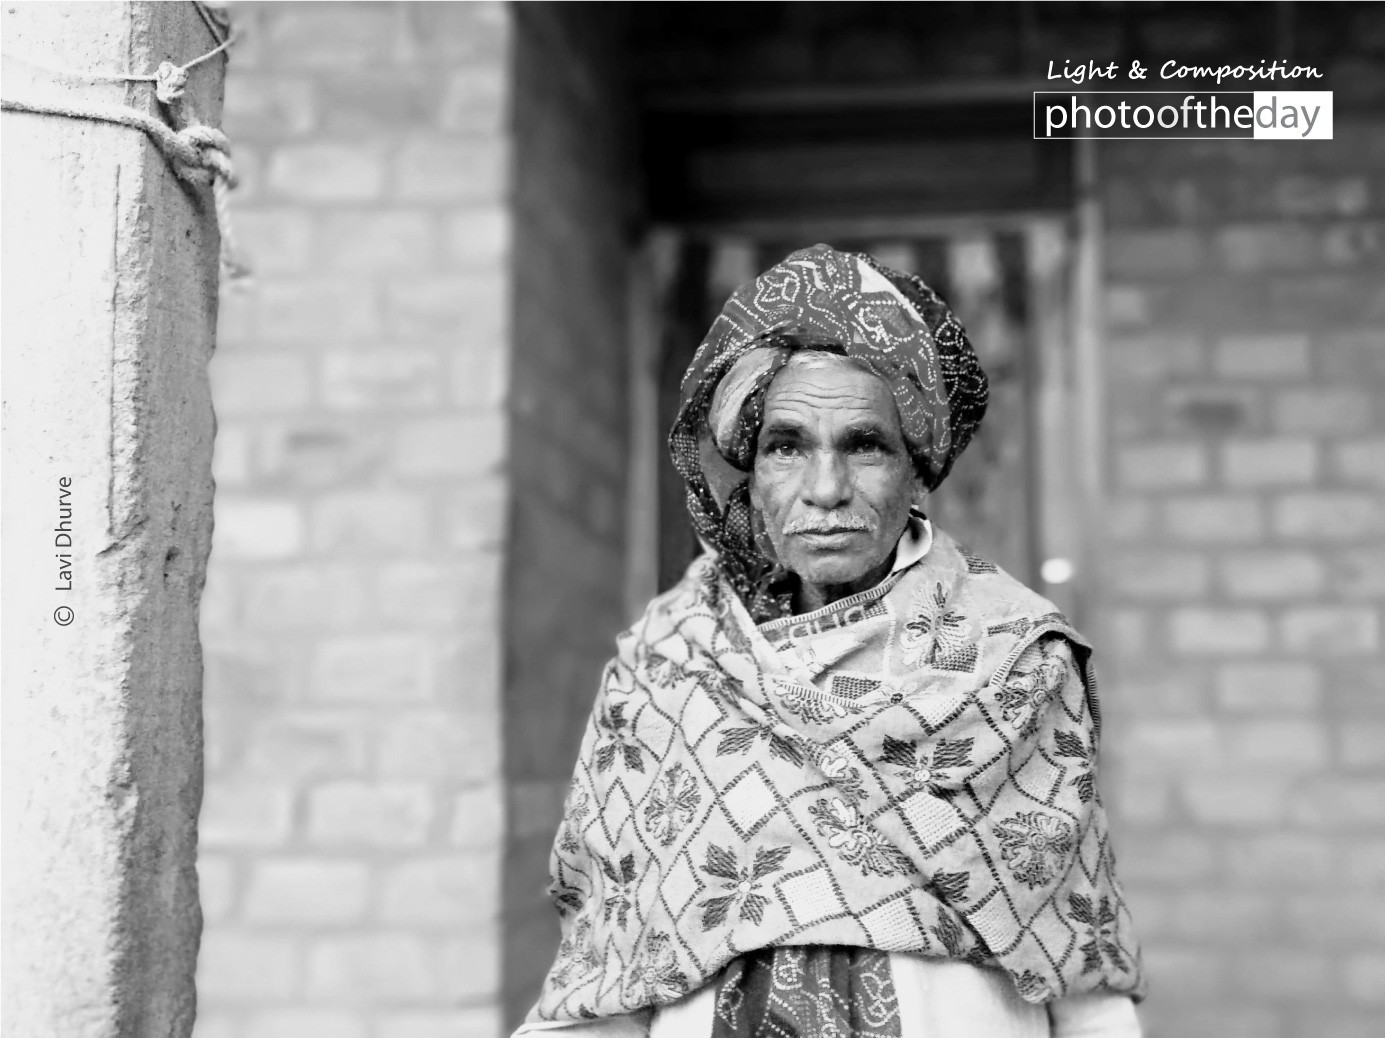 An Old Man with a Turban by Lavi Dhurve